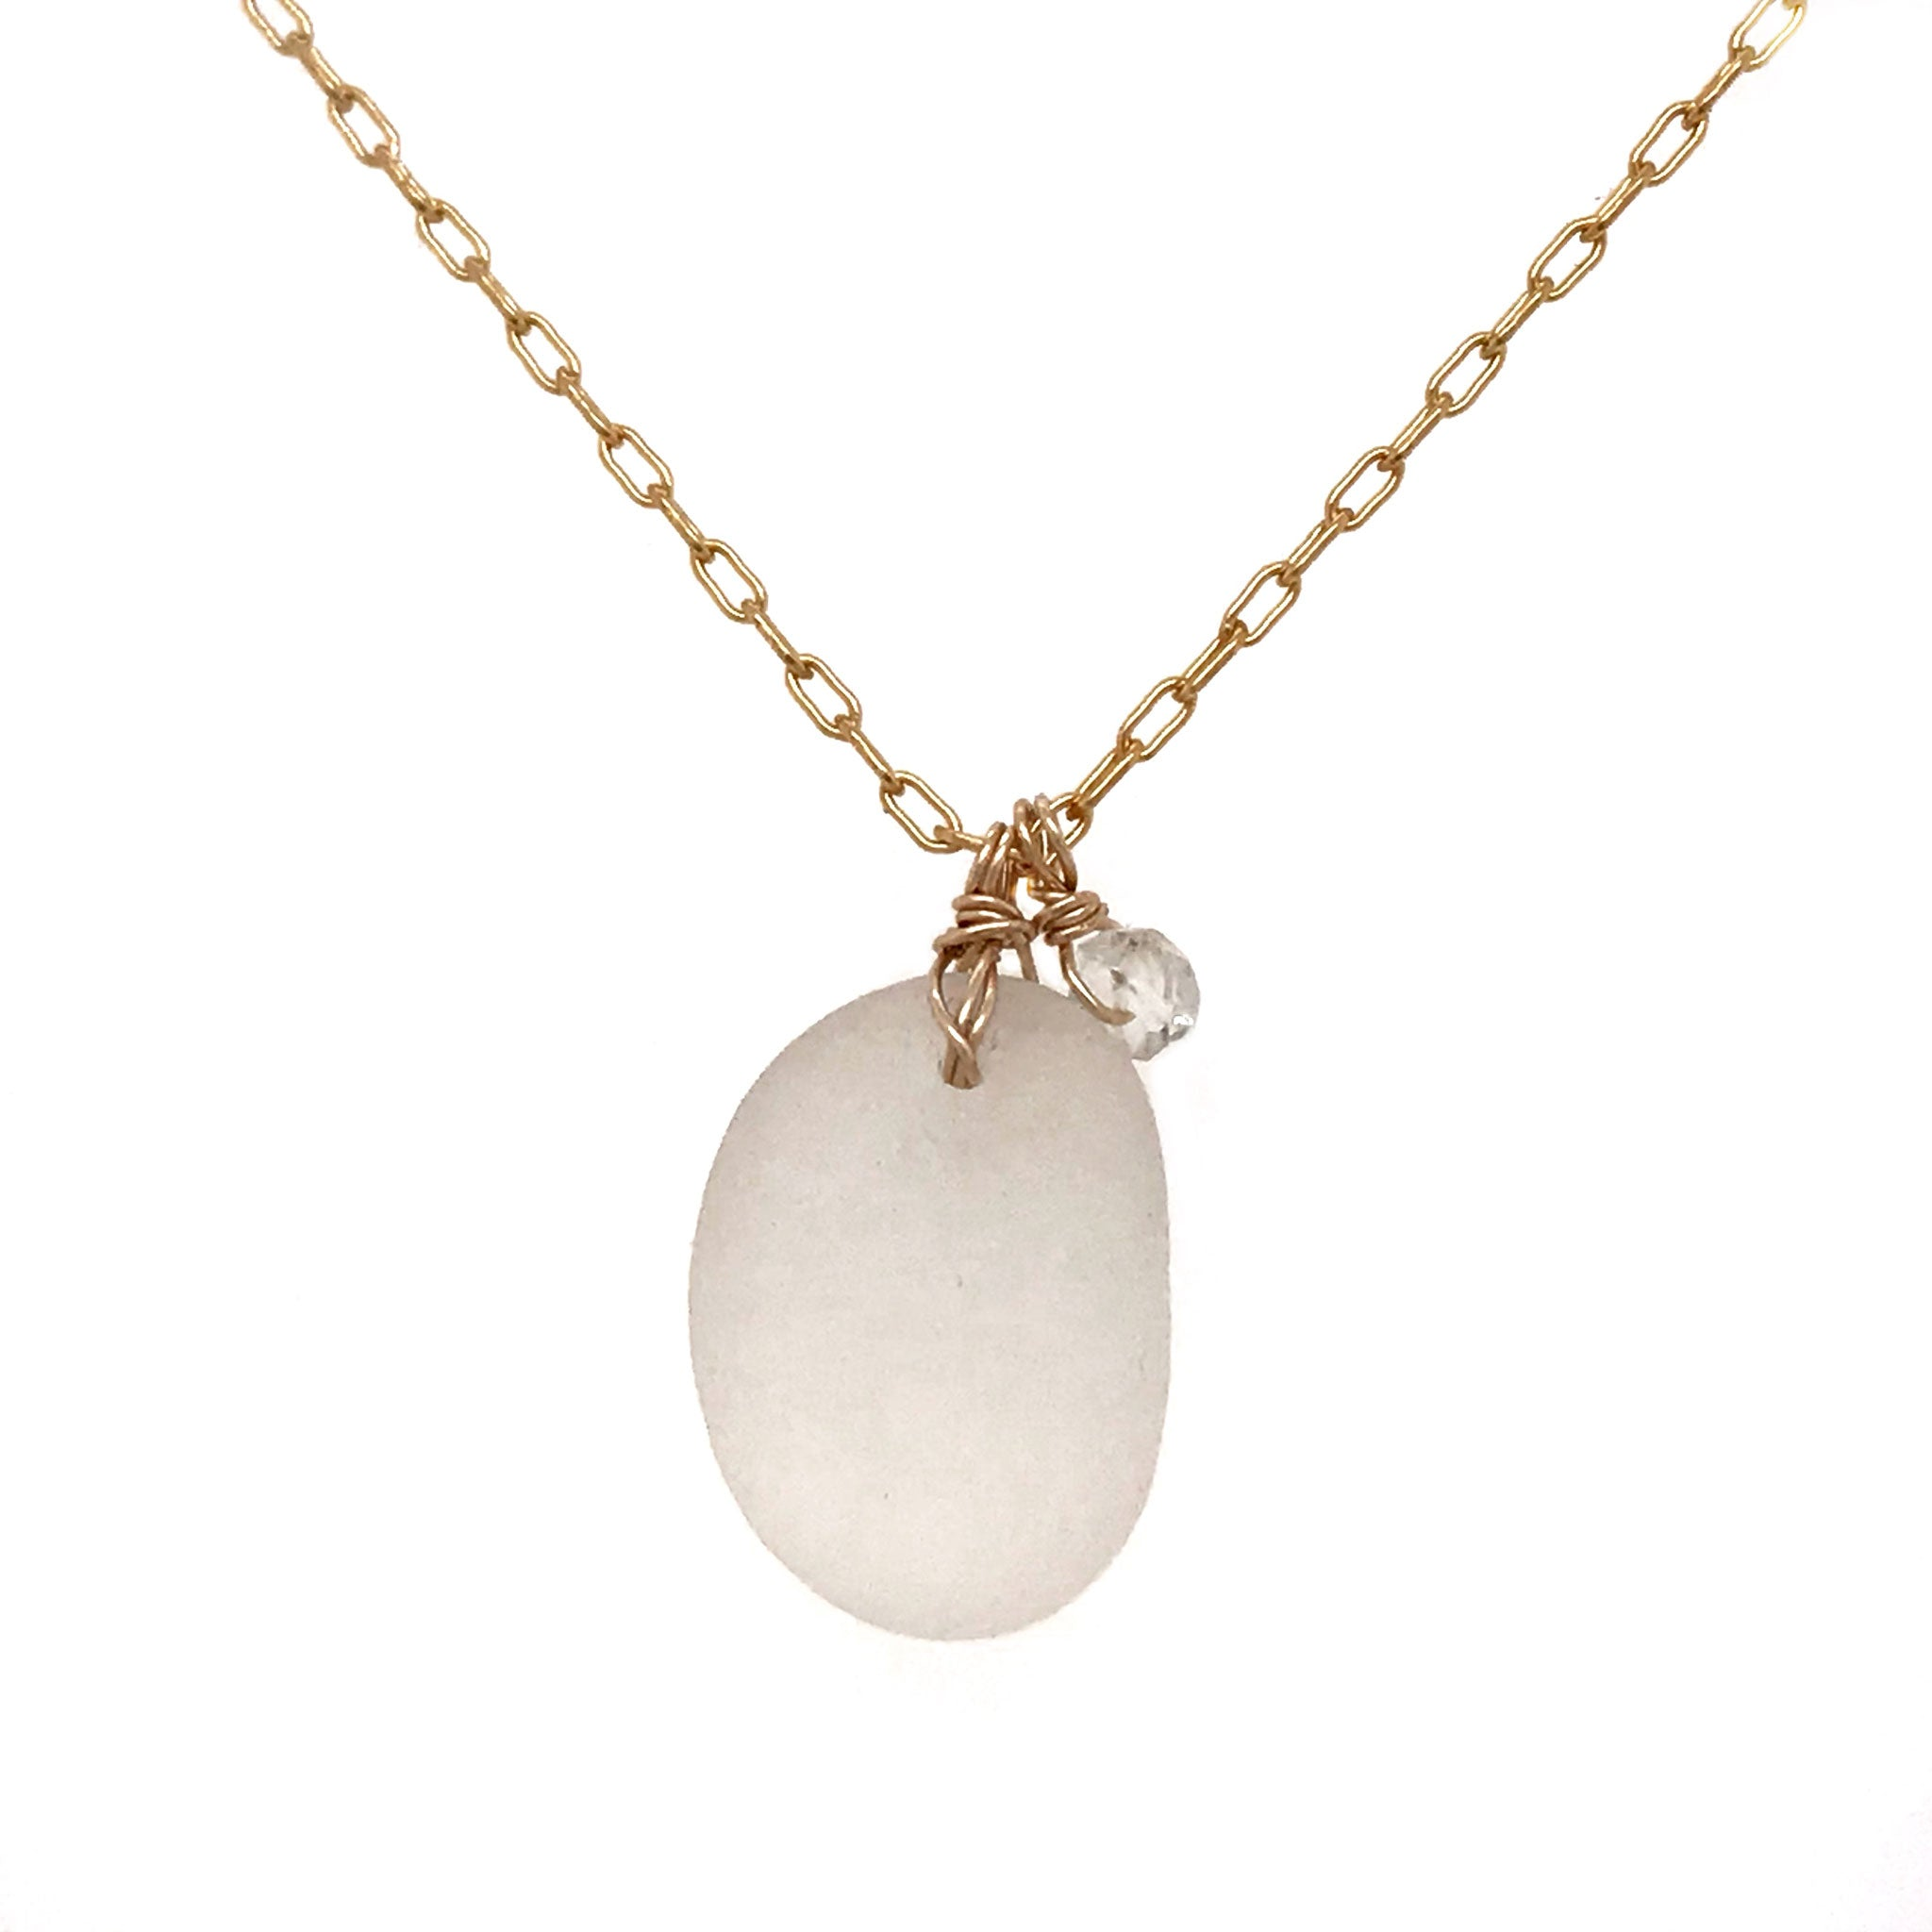 gold necklace with clear seaglass and aquamarines kriket broadhurst jewellery